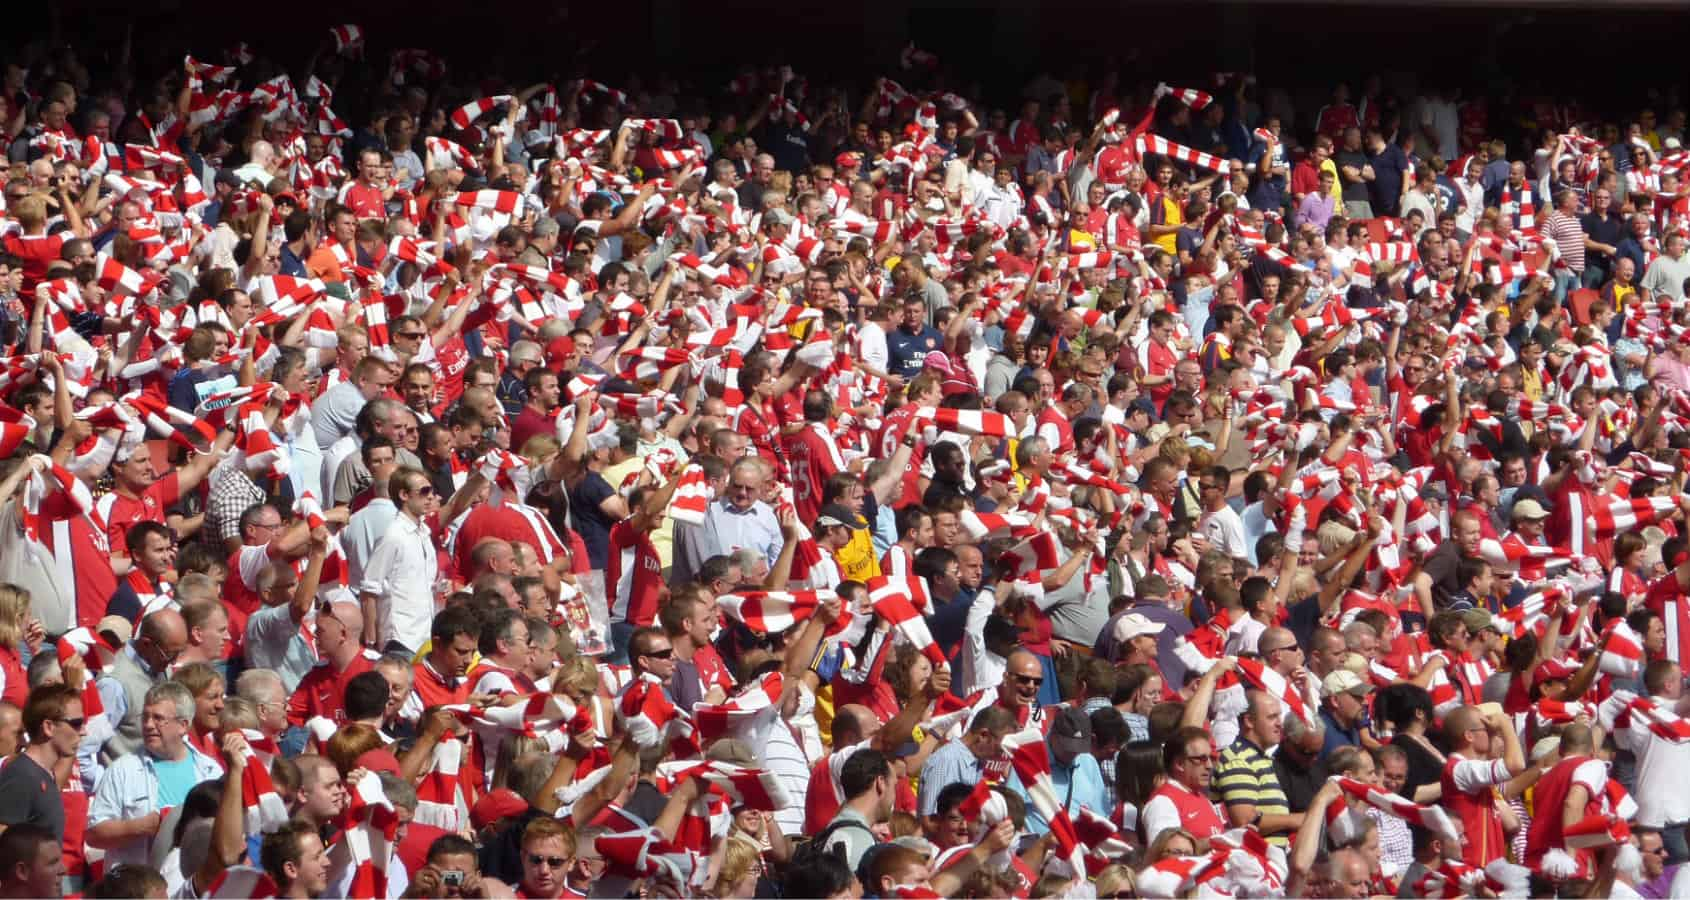 Fotbollsresa, Arsenal, Fans, Supporters